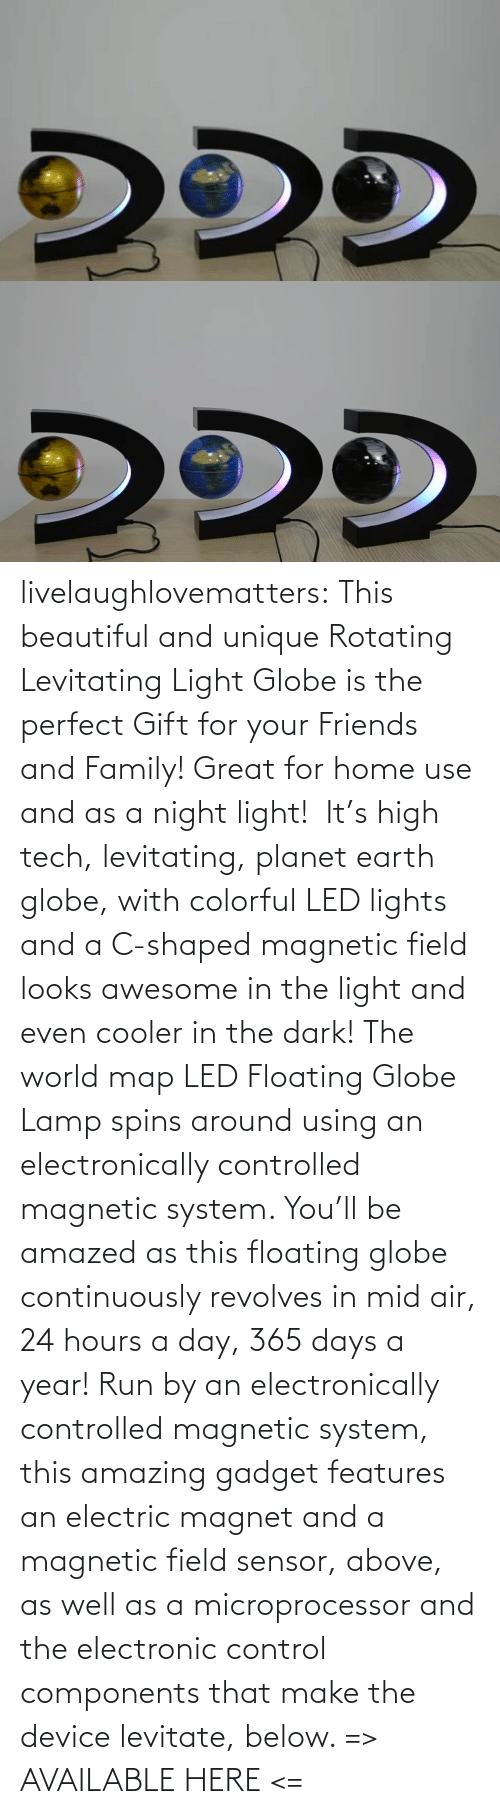 below: livelaughlovematters: This beautiful and unique Rotating Levitating Light Globe is the perfect Gift for your Friends and Family! Great for home use and as a night light!  It's high tech, levitating, planet earth globe, with colorful LED lights and a C-shaped magnetic field looks awesome in the light and even cooler in the dark! The world map LED Floating Globe Lamp spins around using an electronically controlled magnetic system.  You'll be amazed as this floating globe continuously revolves in mid air, 24 hours a day, 365 days a year! Run by an electronically controlled magnetic system, this amazing gadget features an electric magnet and a magnetic field sensor, above, as well as a microprocessor and the electronic control components that make the device levitate, below.  => AVAILABLE HERE <=